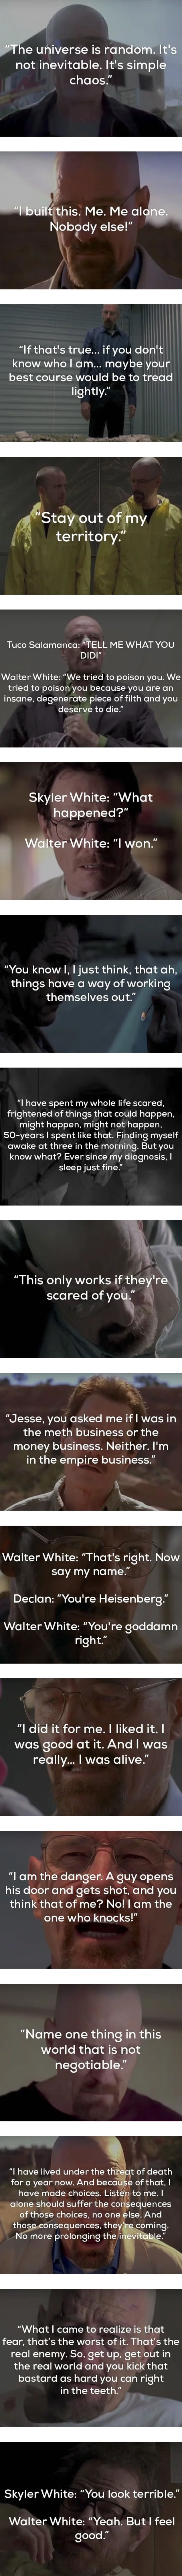 Bada** quotes from Breaking Bad